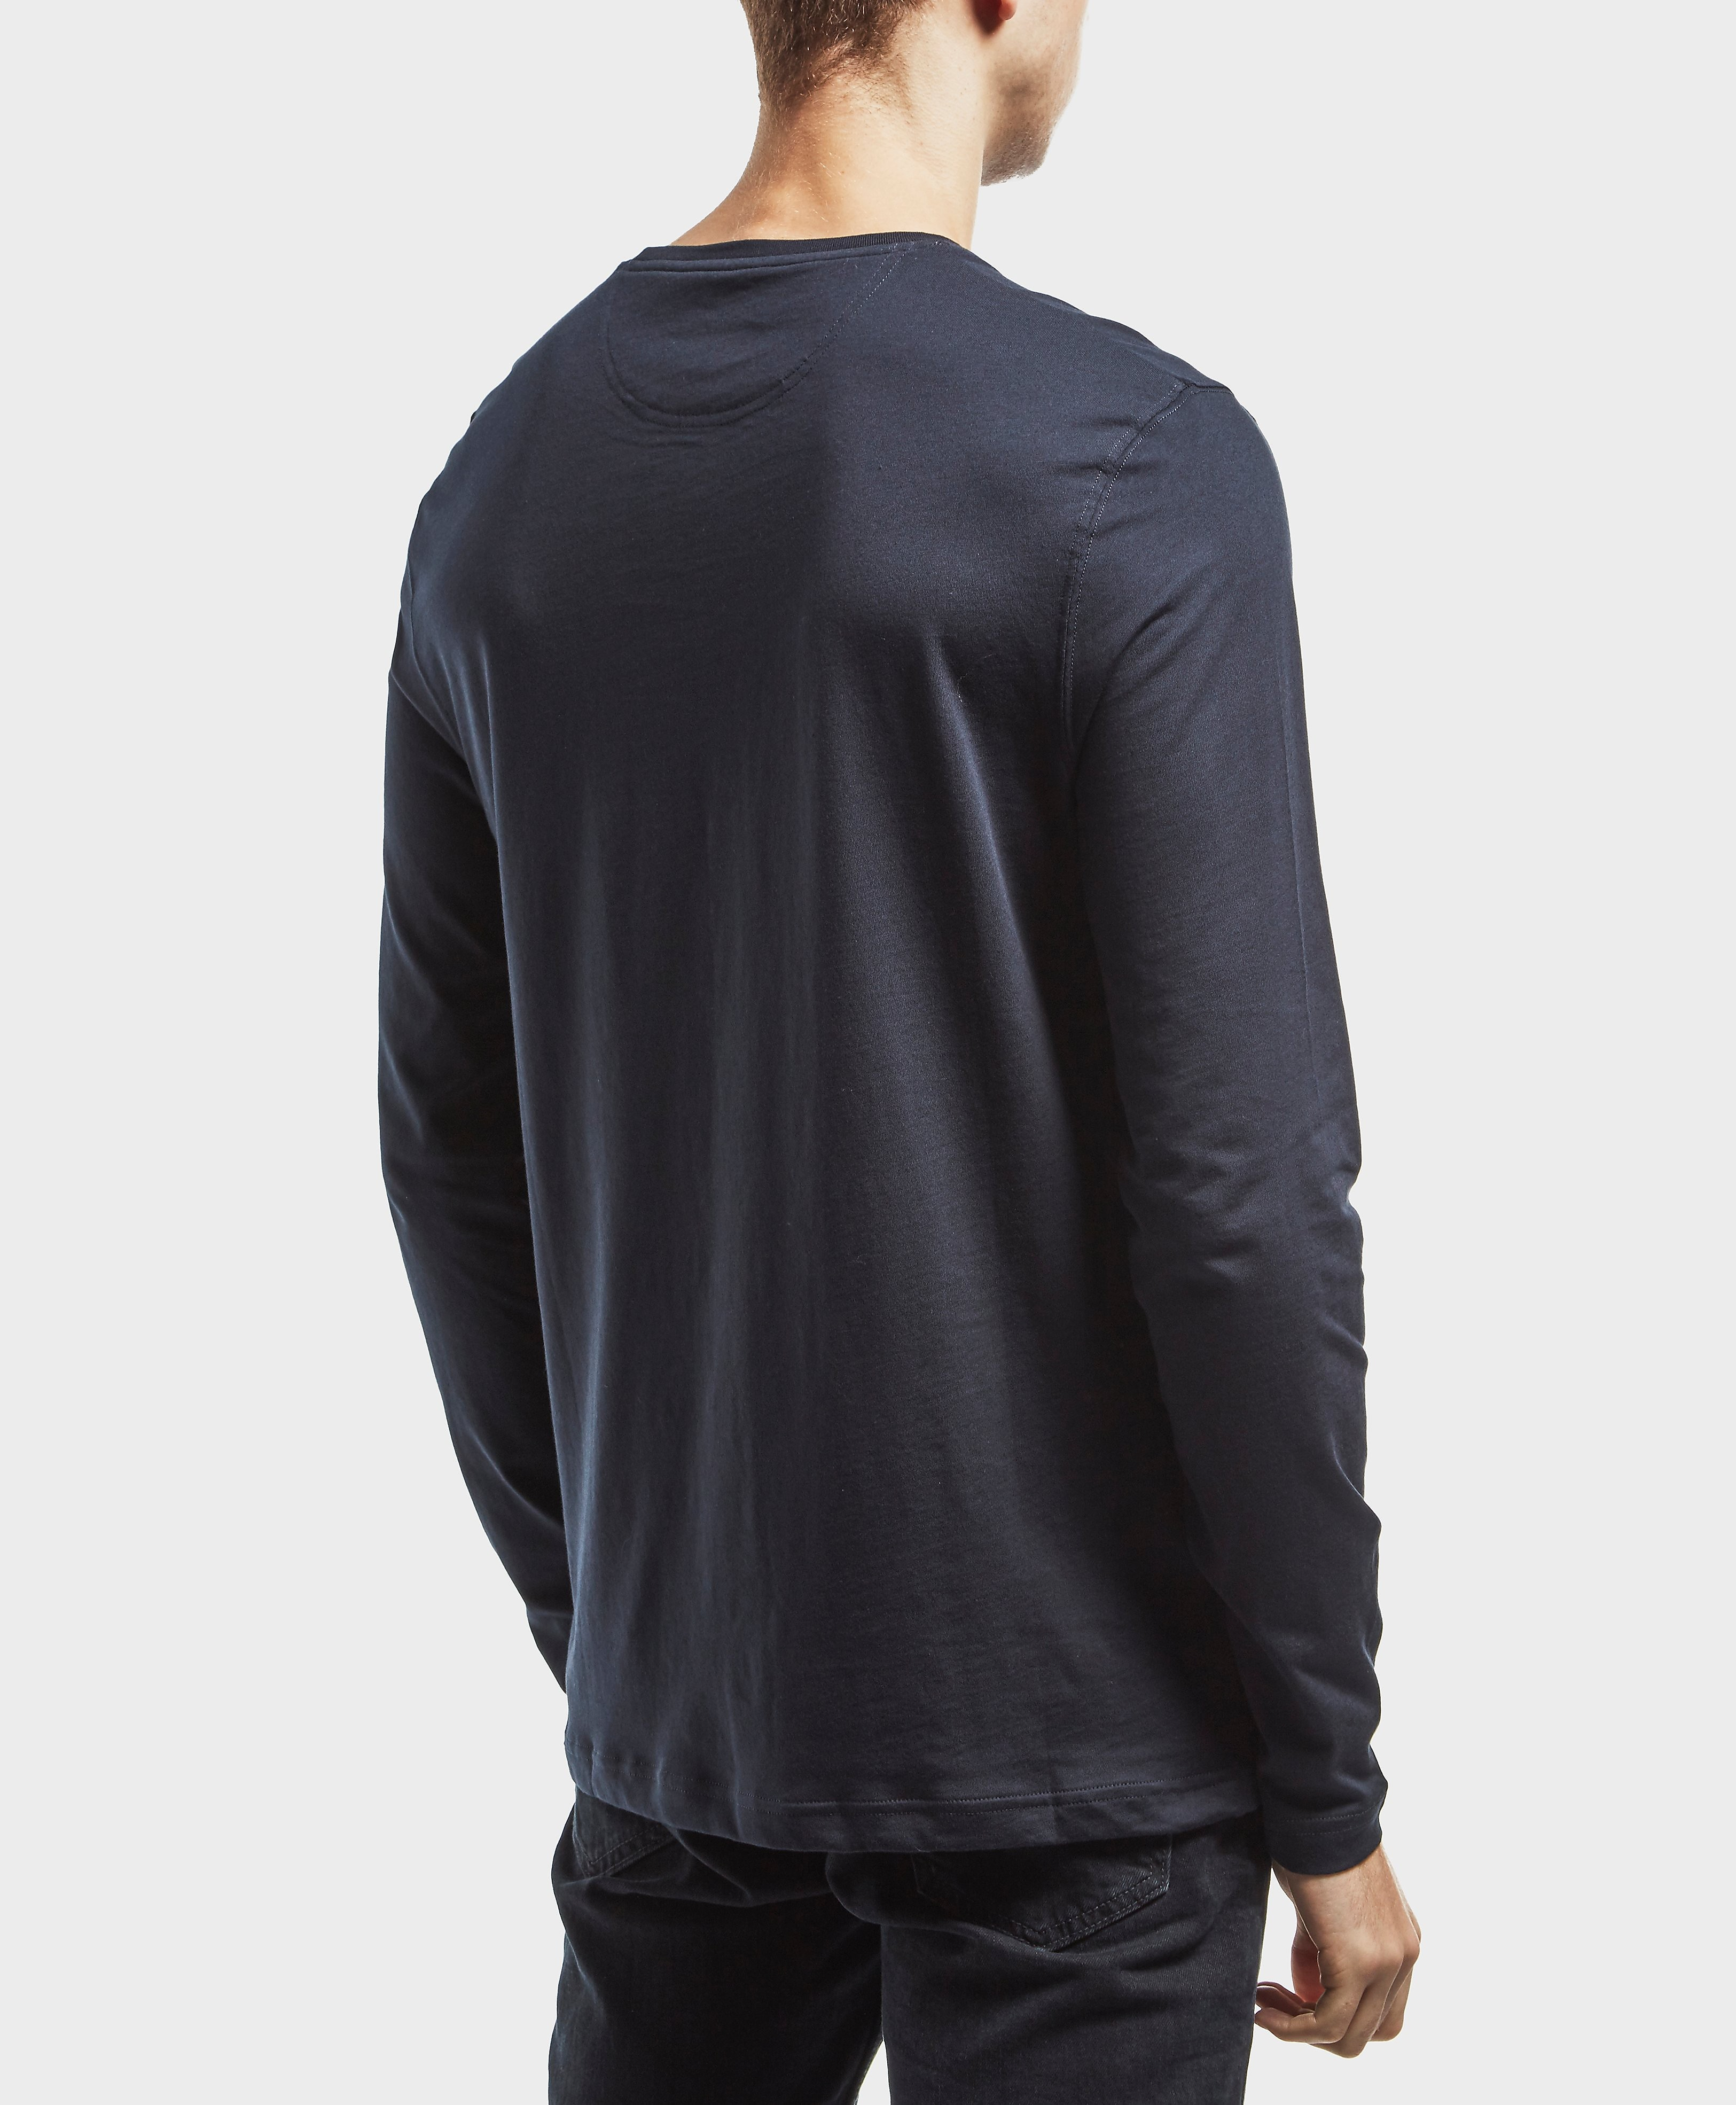 Henri Lloyd Radar Long Sleeve T-Shirt